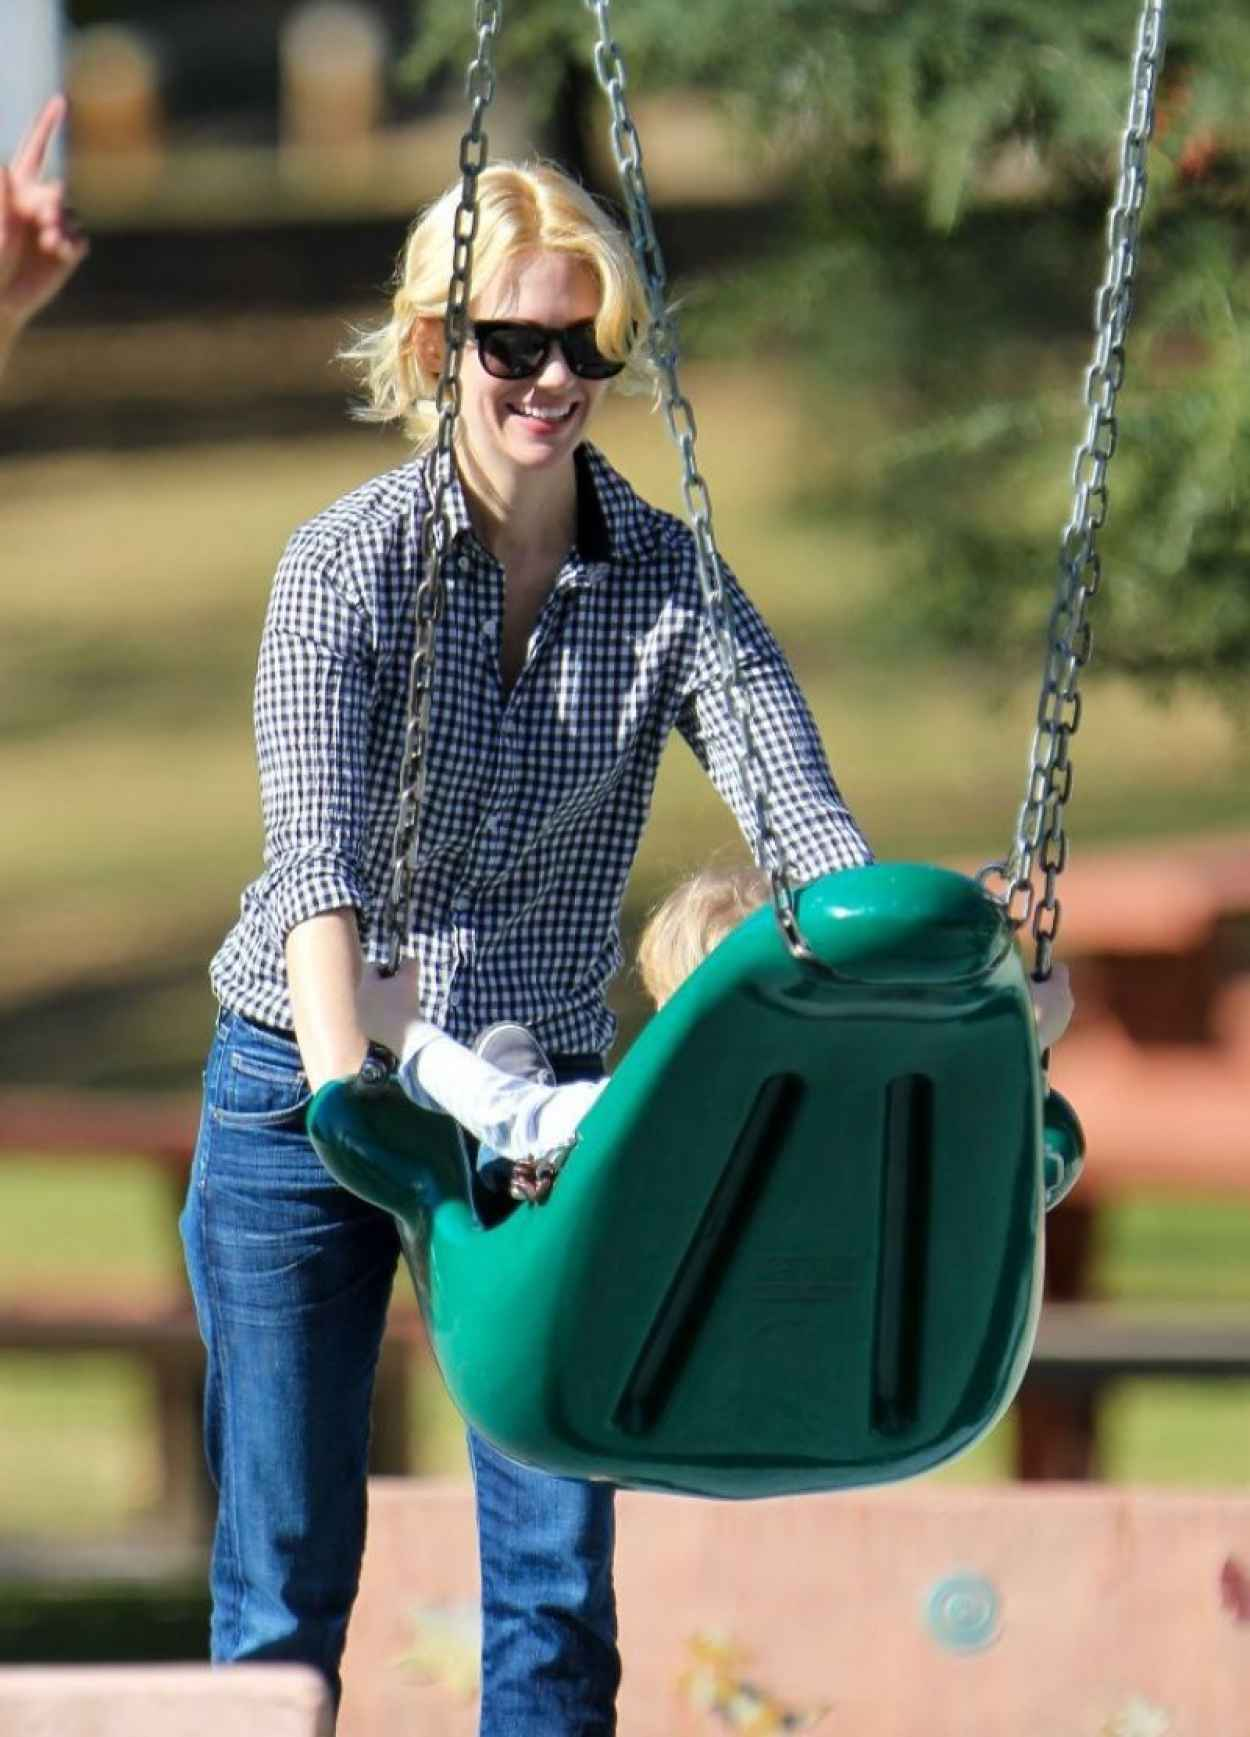 January Jones Spotted at The Playground With Her Kid - February 2015-1